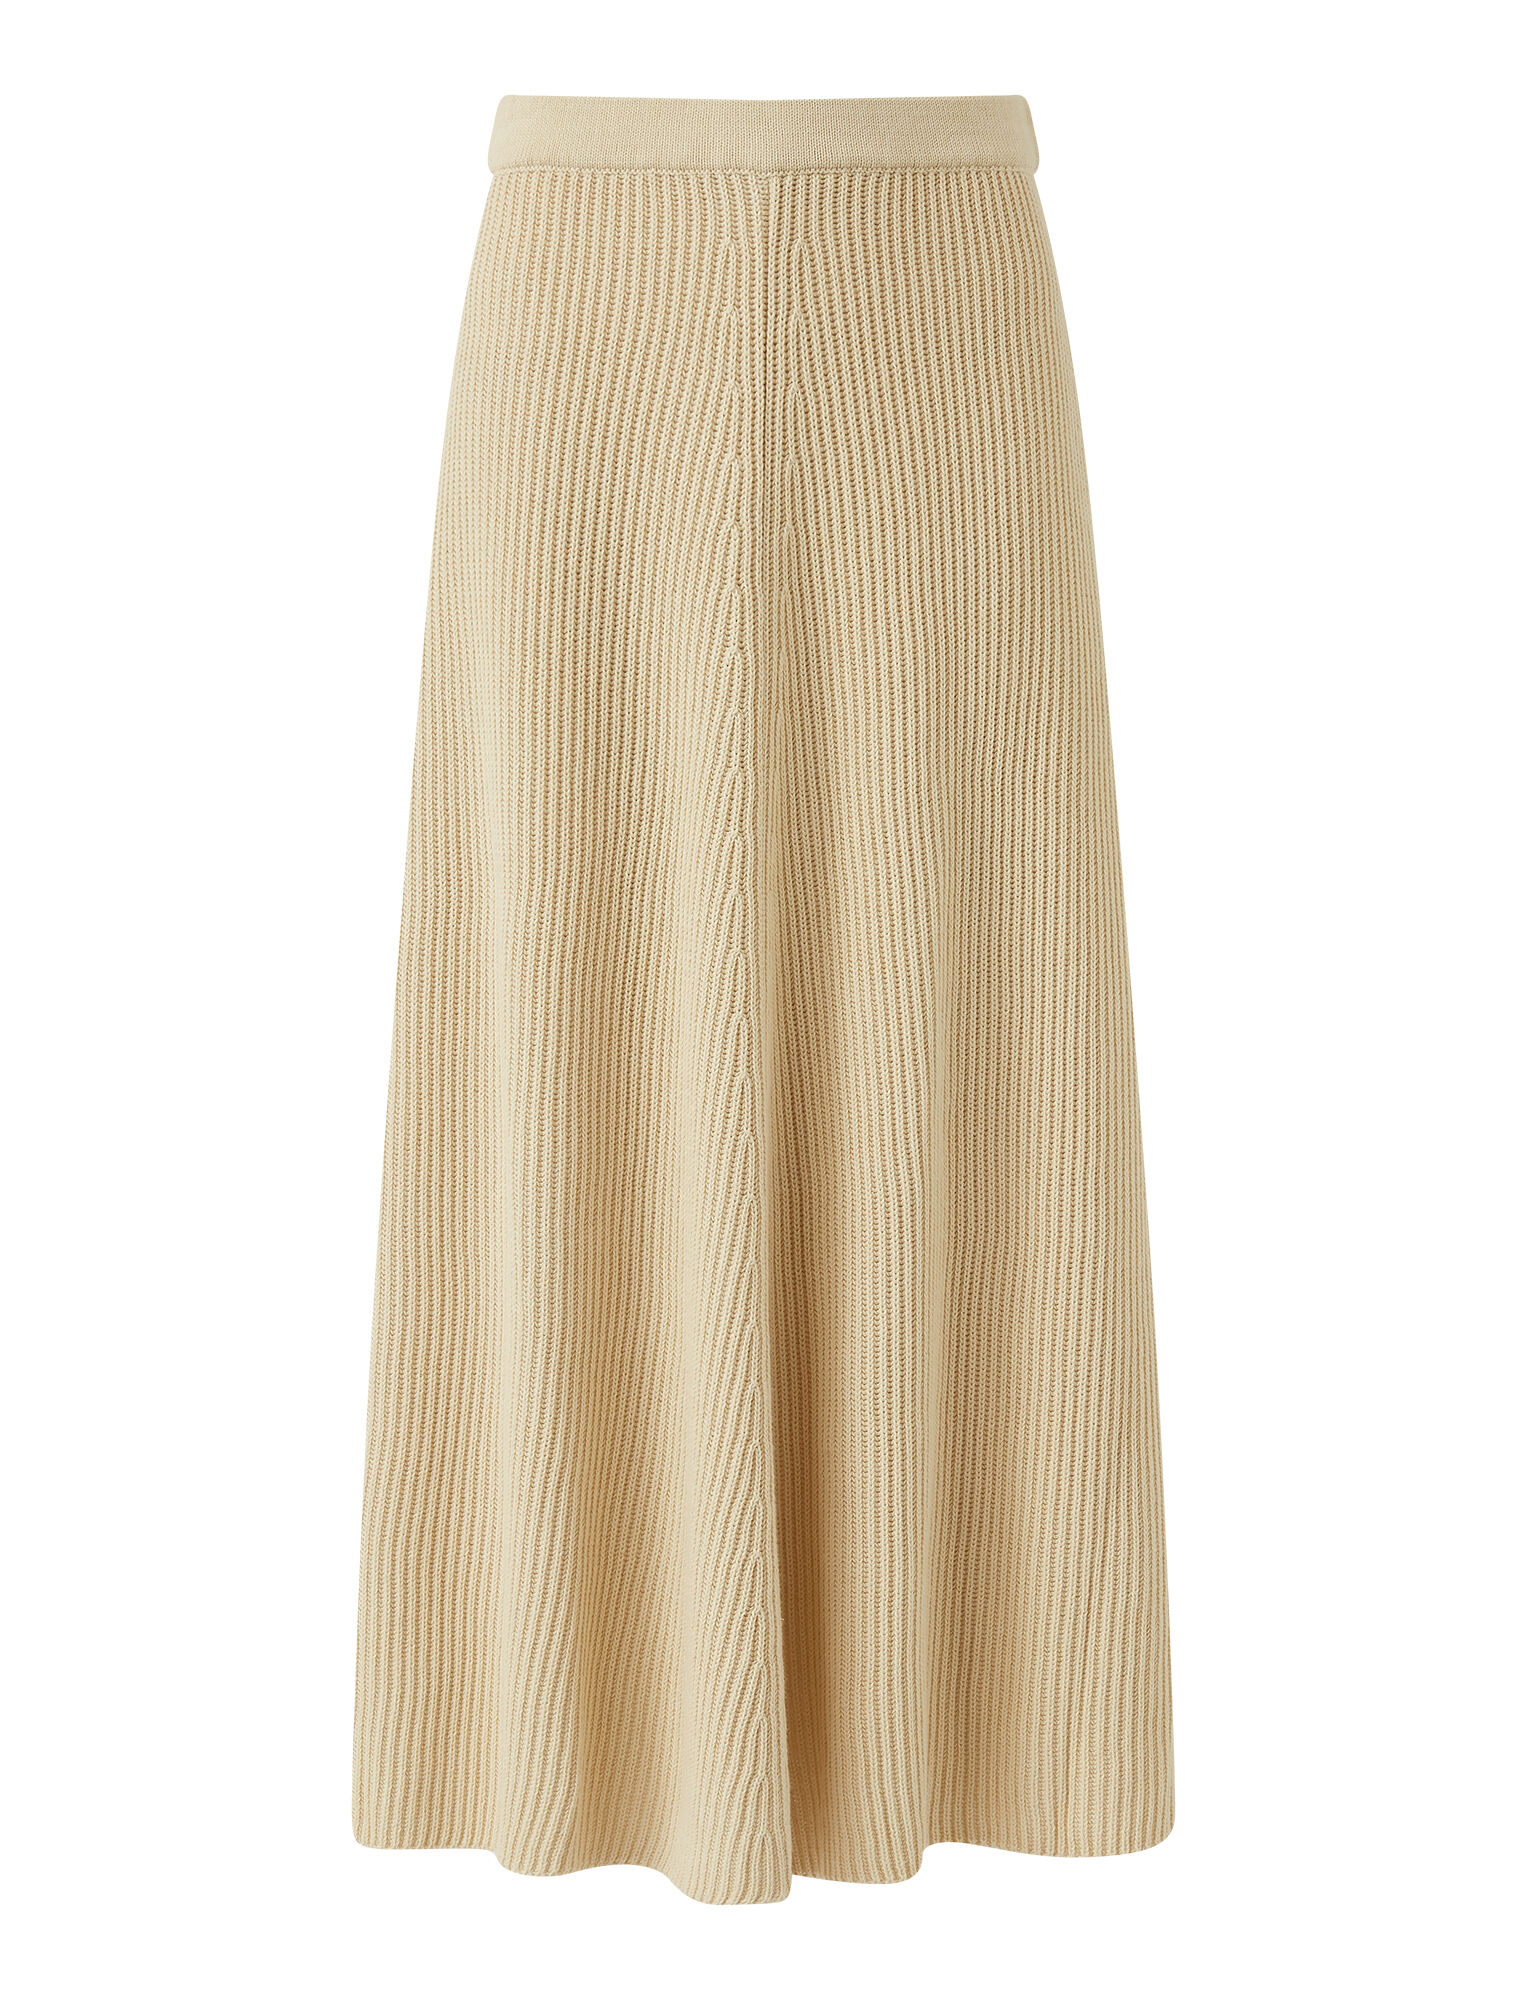 Joseph, Egyptian Cotton Skirt, in IVORY